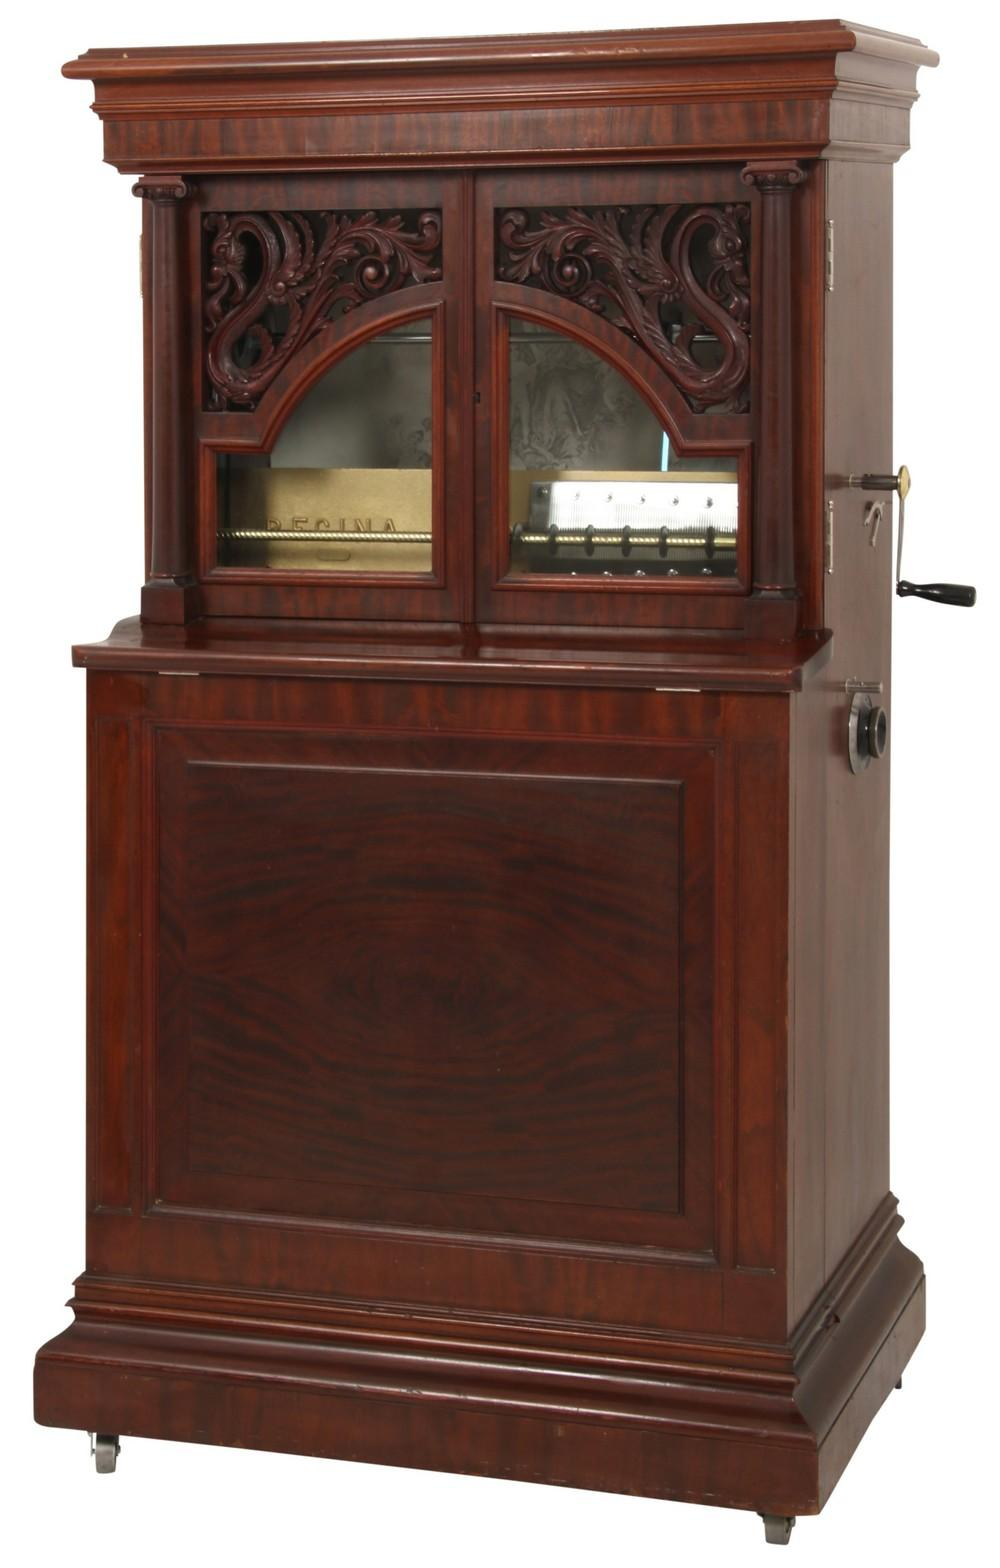 Regina Disc Changing Music Box with Cabinet